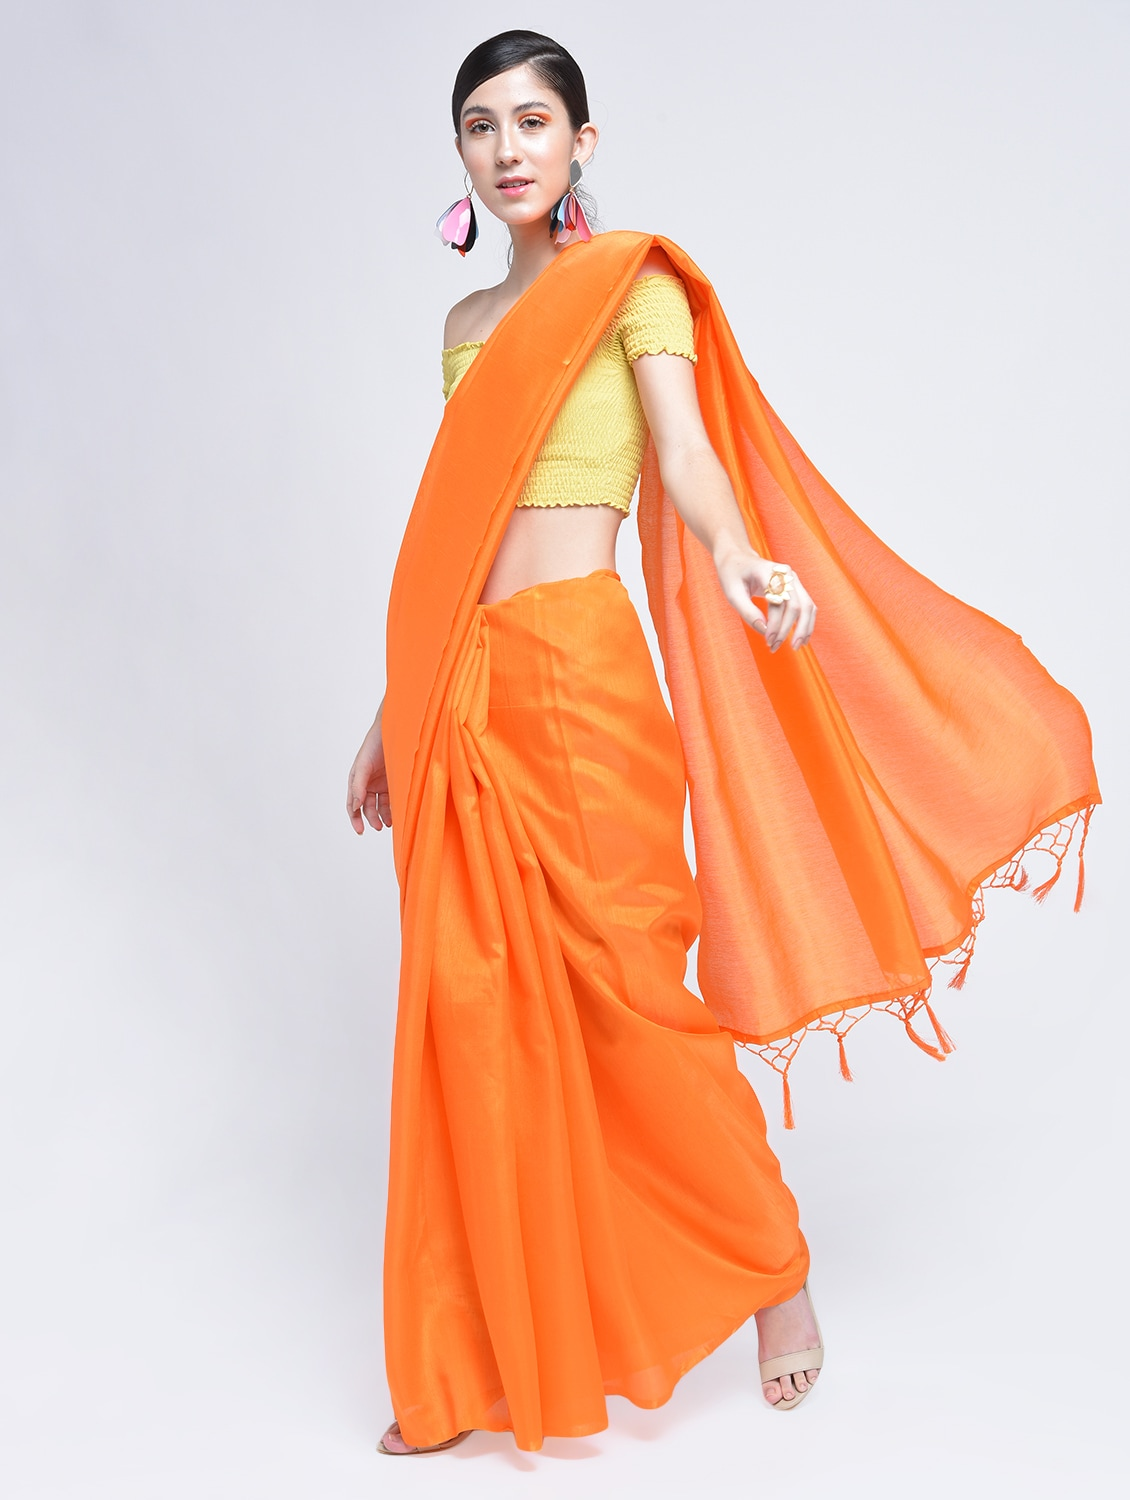 9a888d6aef0e9 Buy Tassels Pallu Plain Orange Saree With Blouse for Women from Aaena for ₹ 874 at 0% off